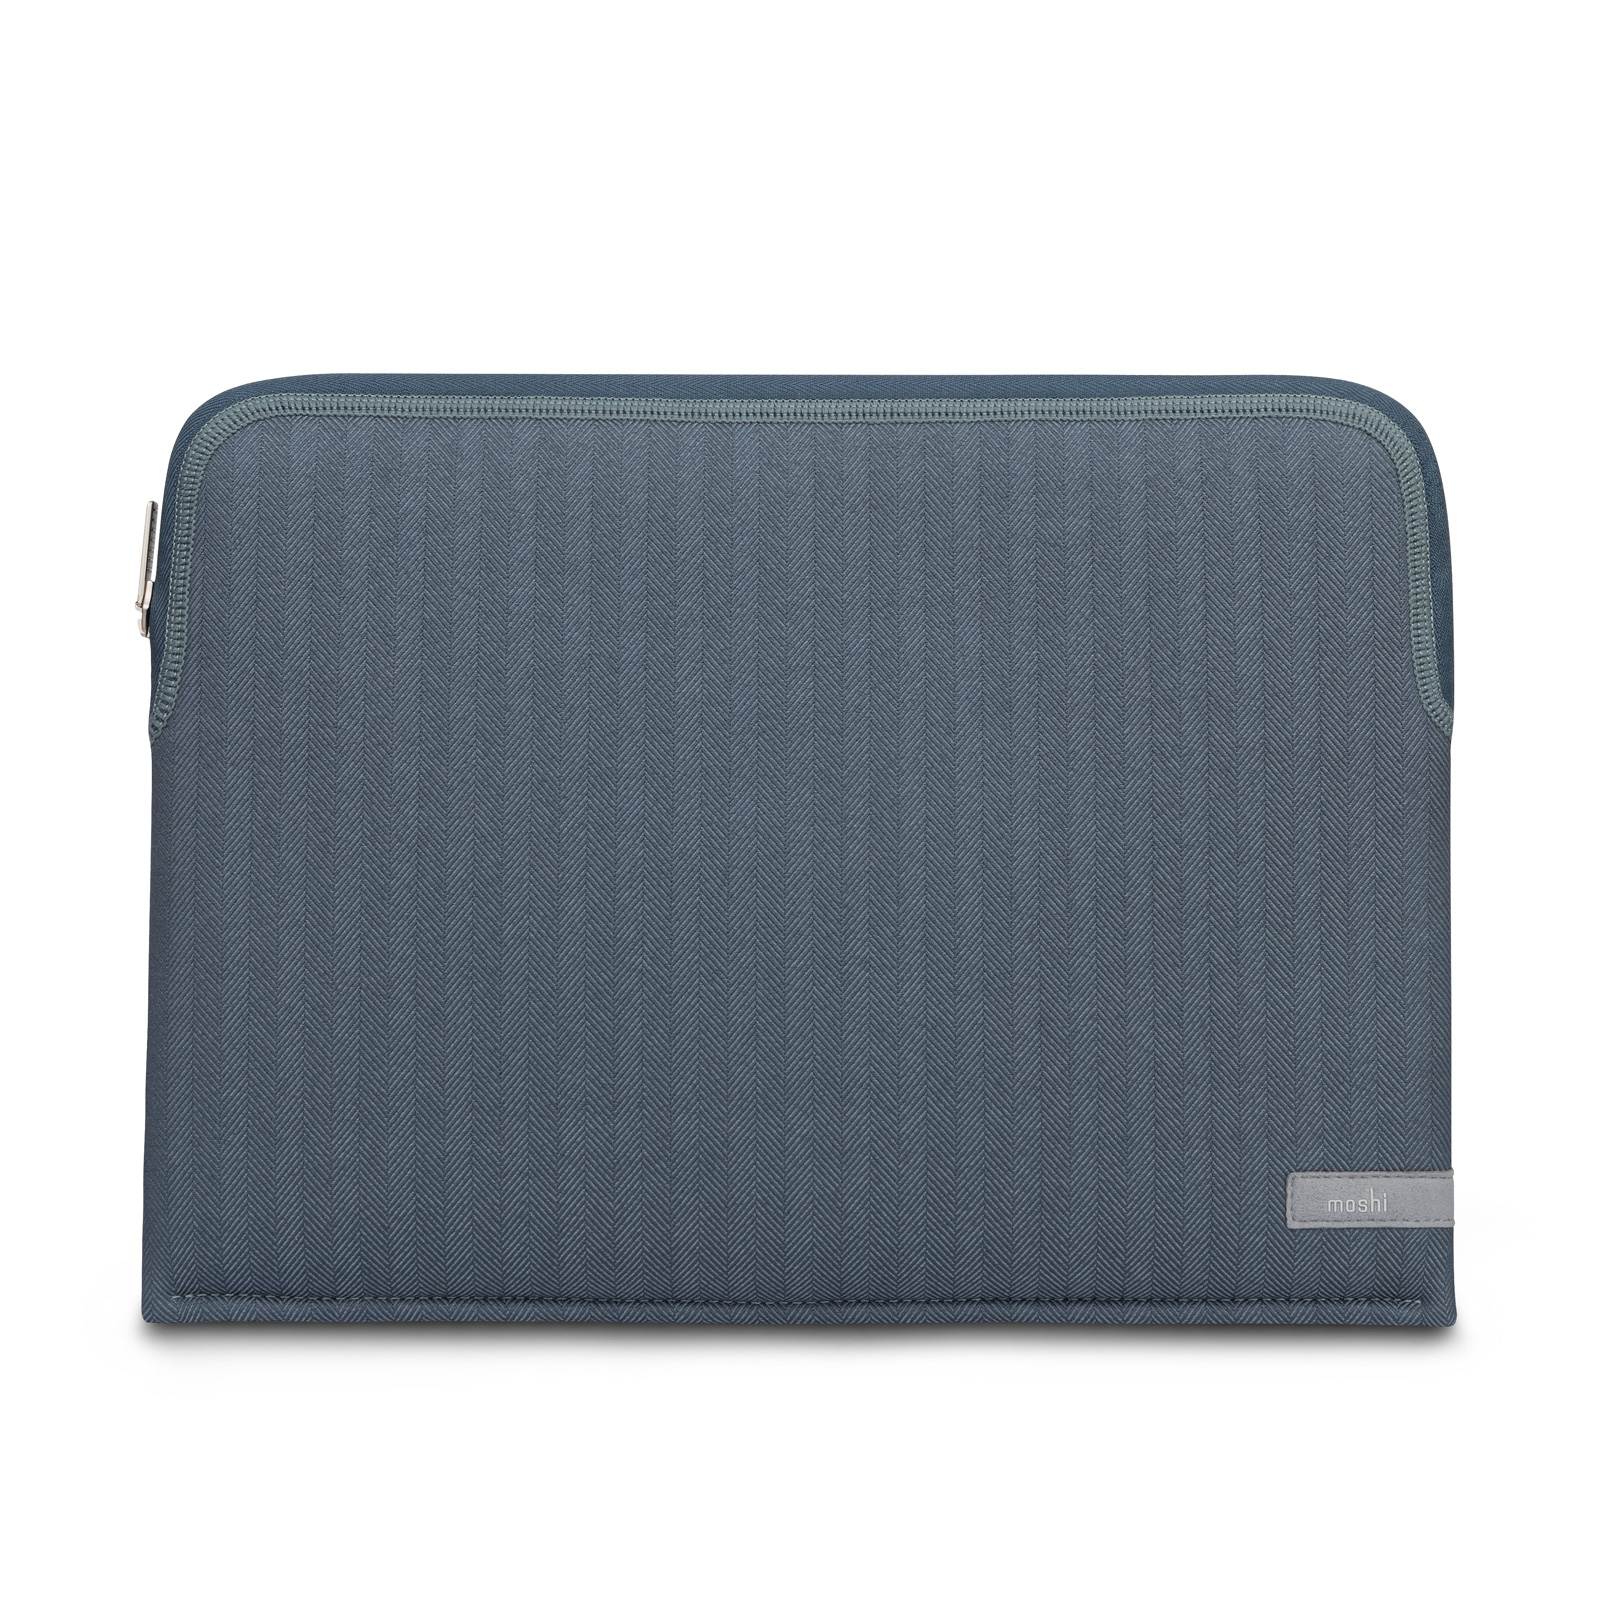 "Pluma 13"" Laptop Sleeve-image"